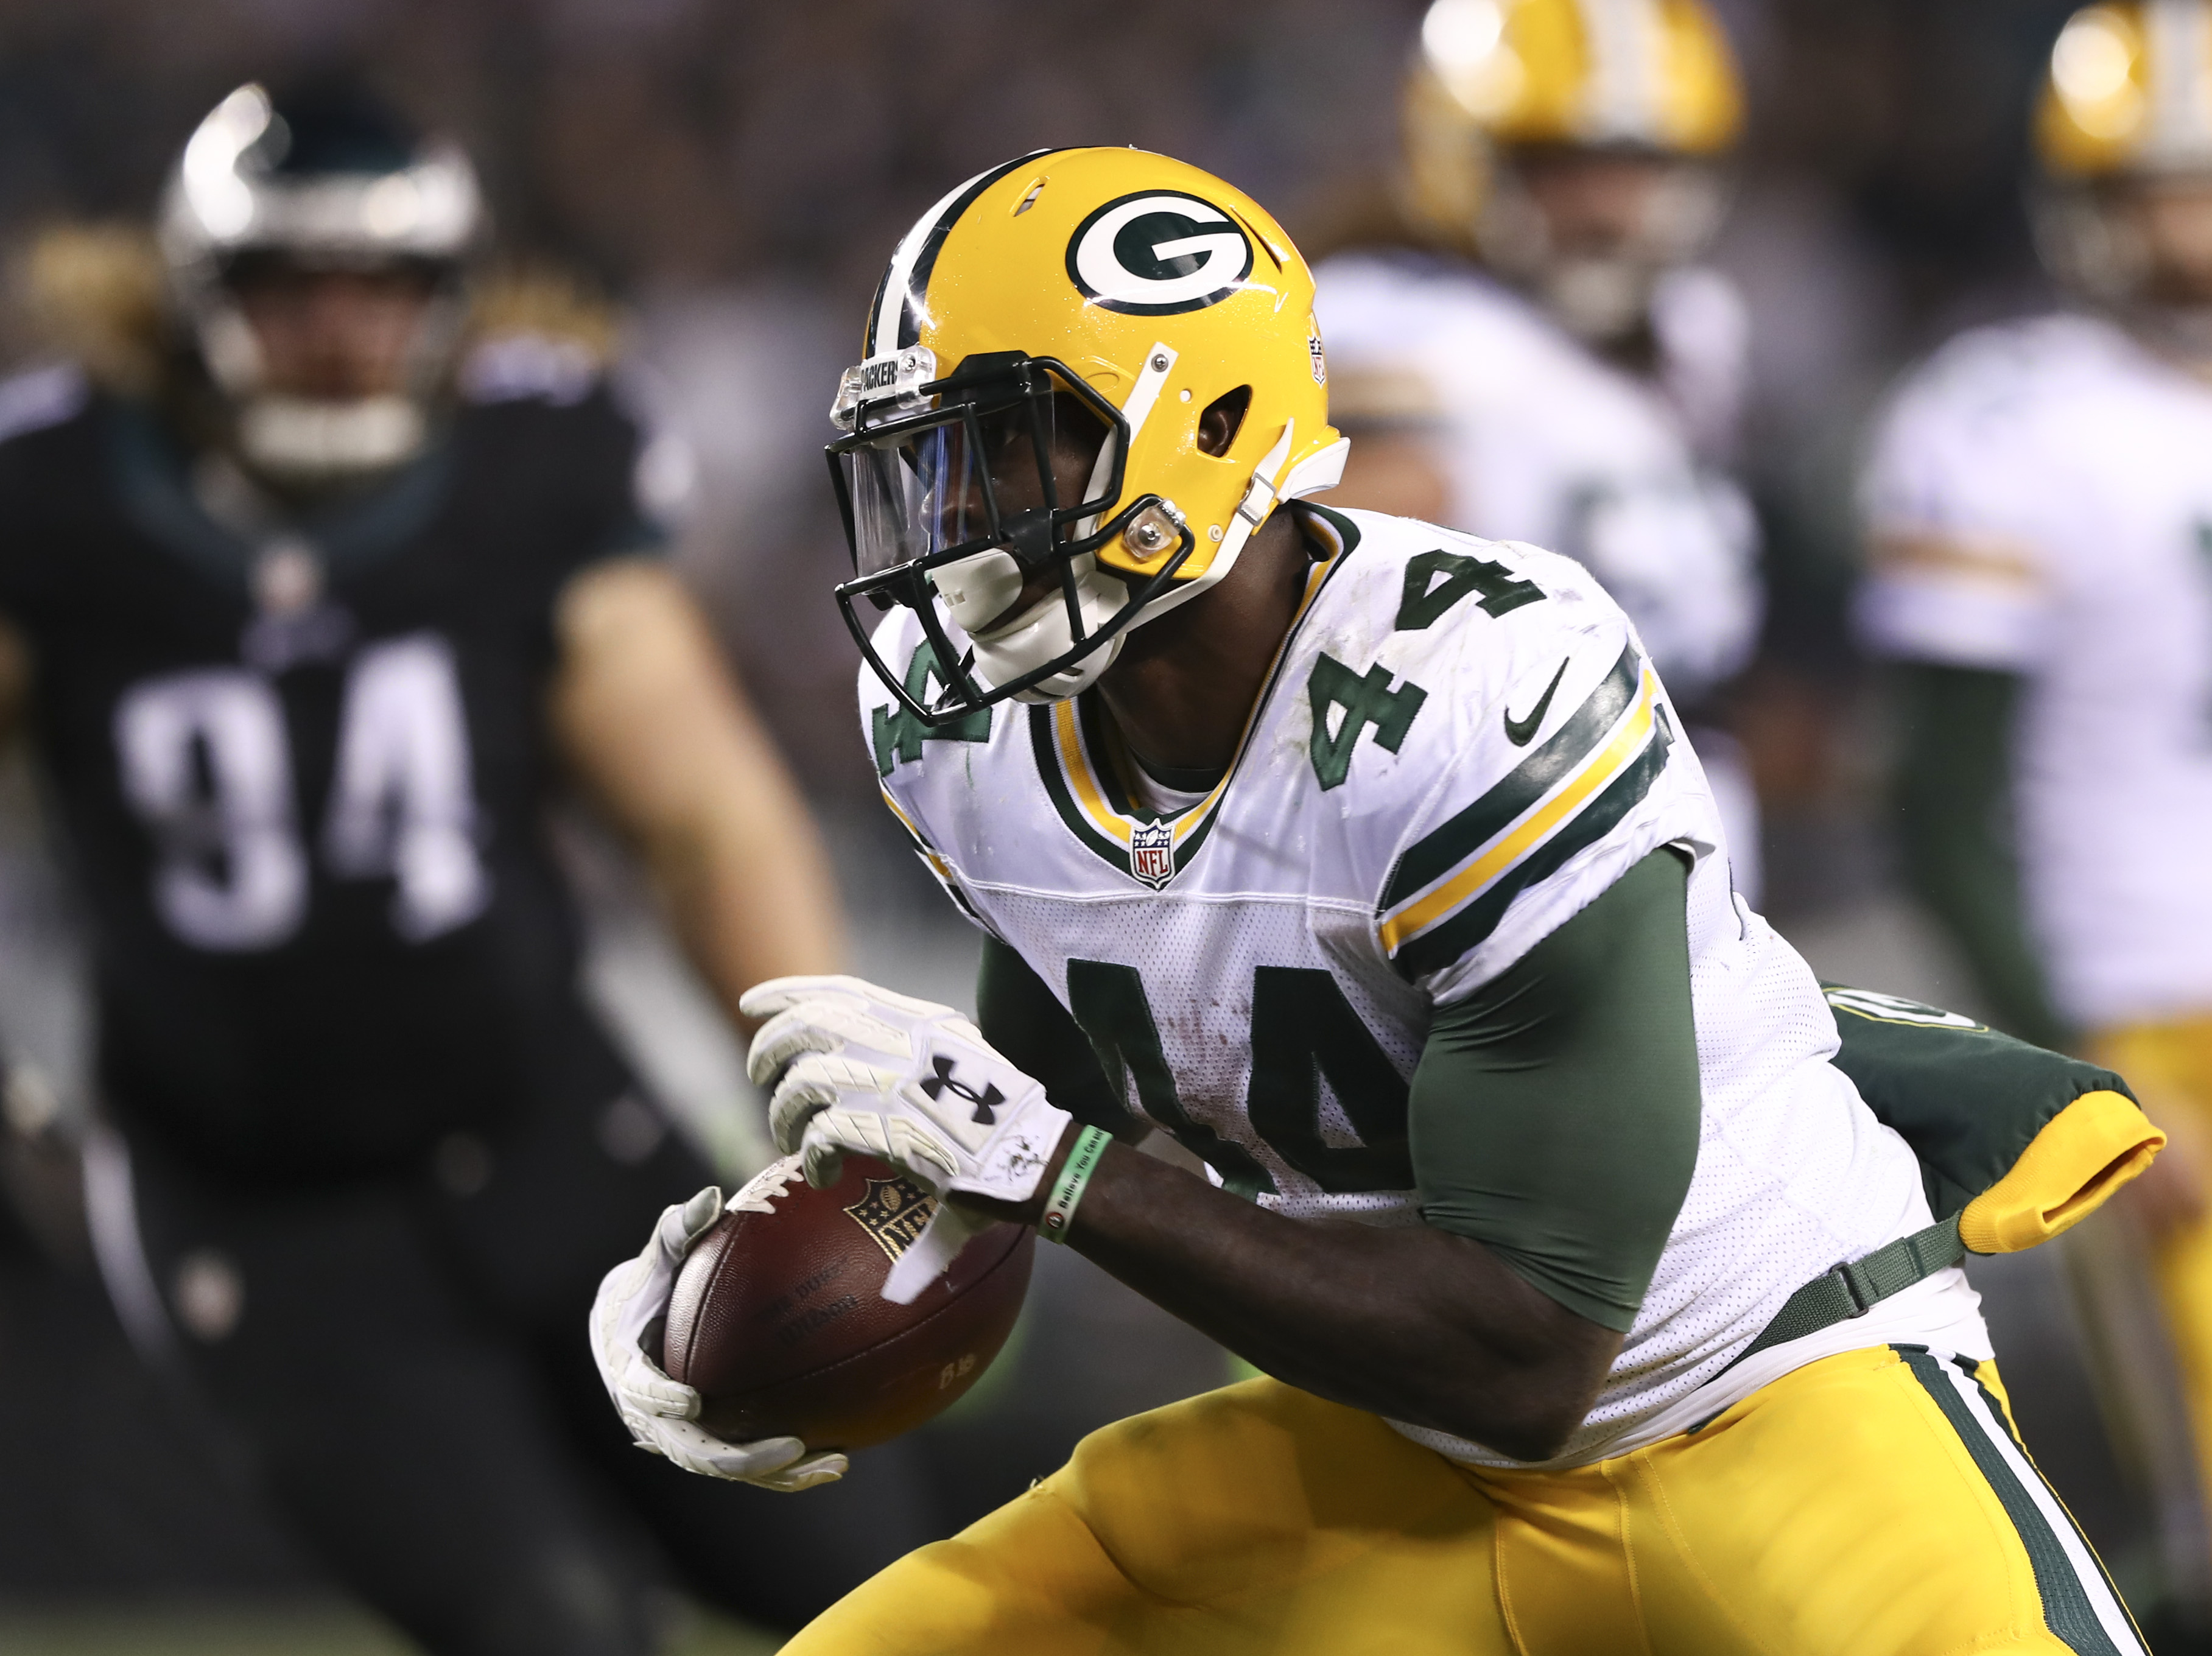 Niagara Falls native James Starks had an injury-plagued 2016 season with the Green Bay Packers. (Getty Images)